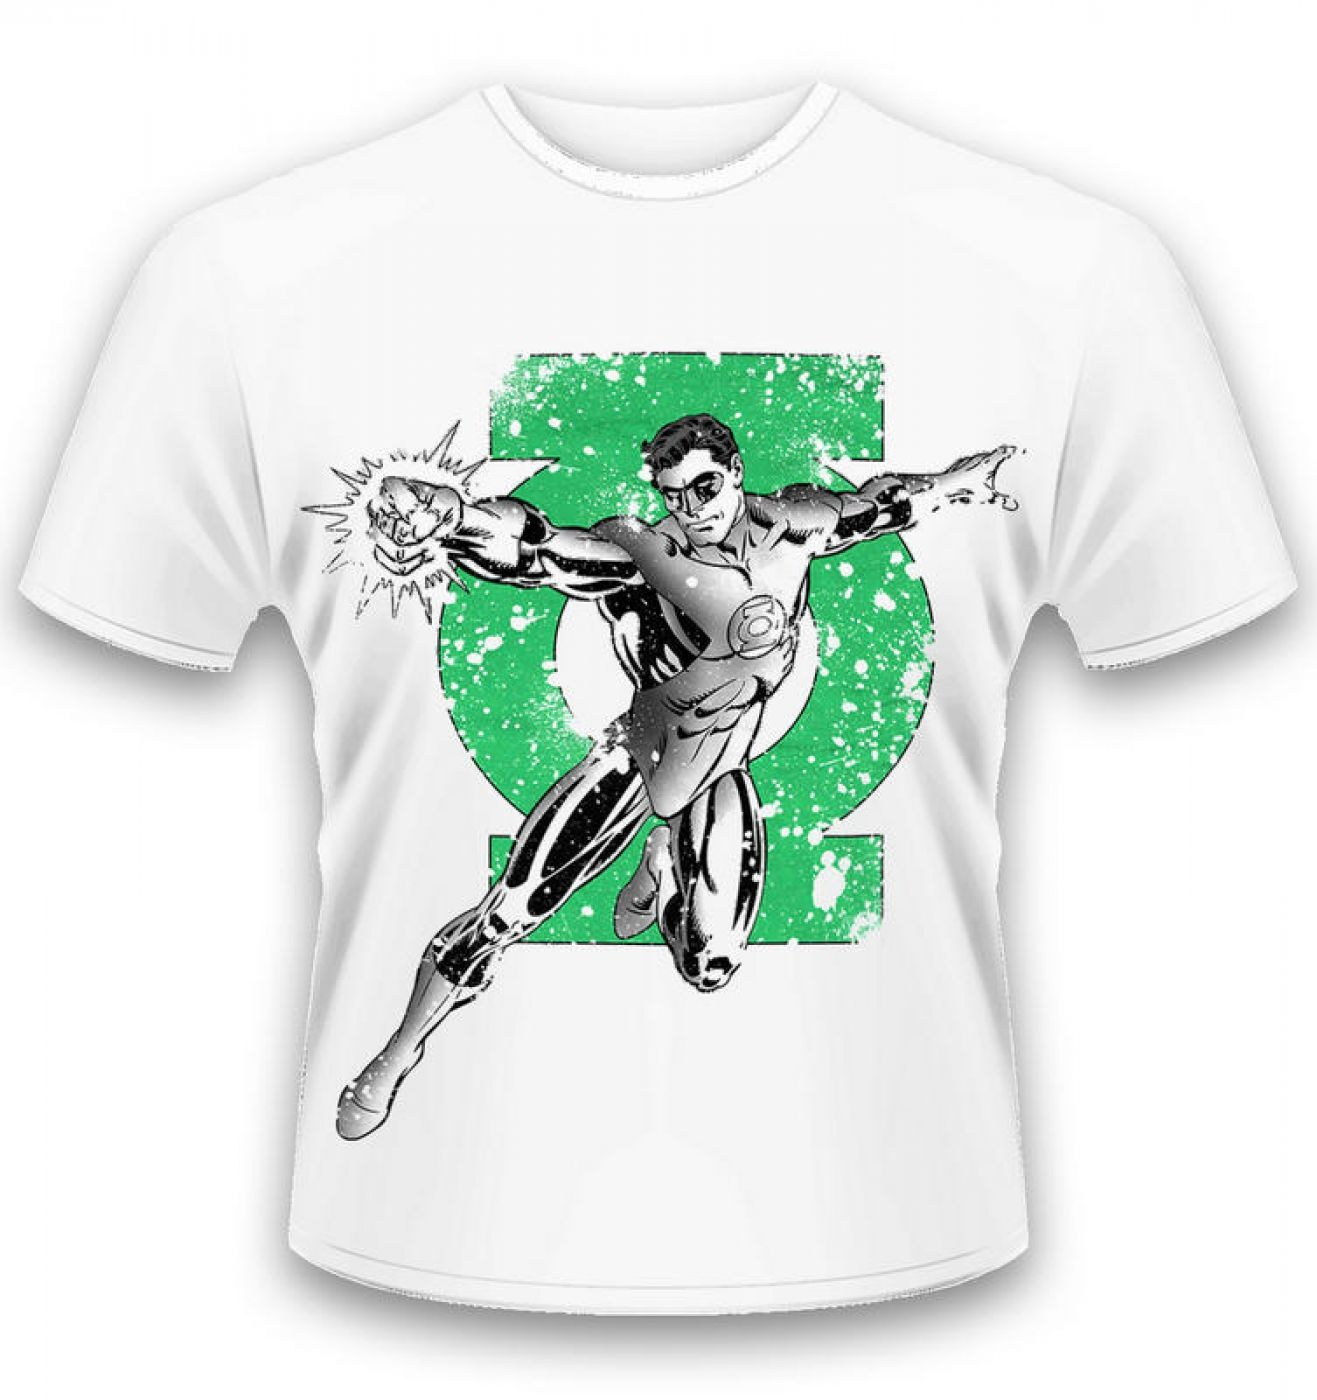 Official Green Lantern t-shirt by DC Originals - Green Lantern Punch t-shirt